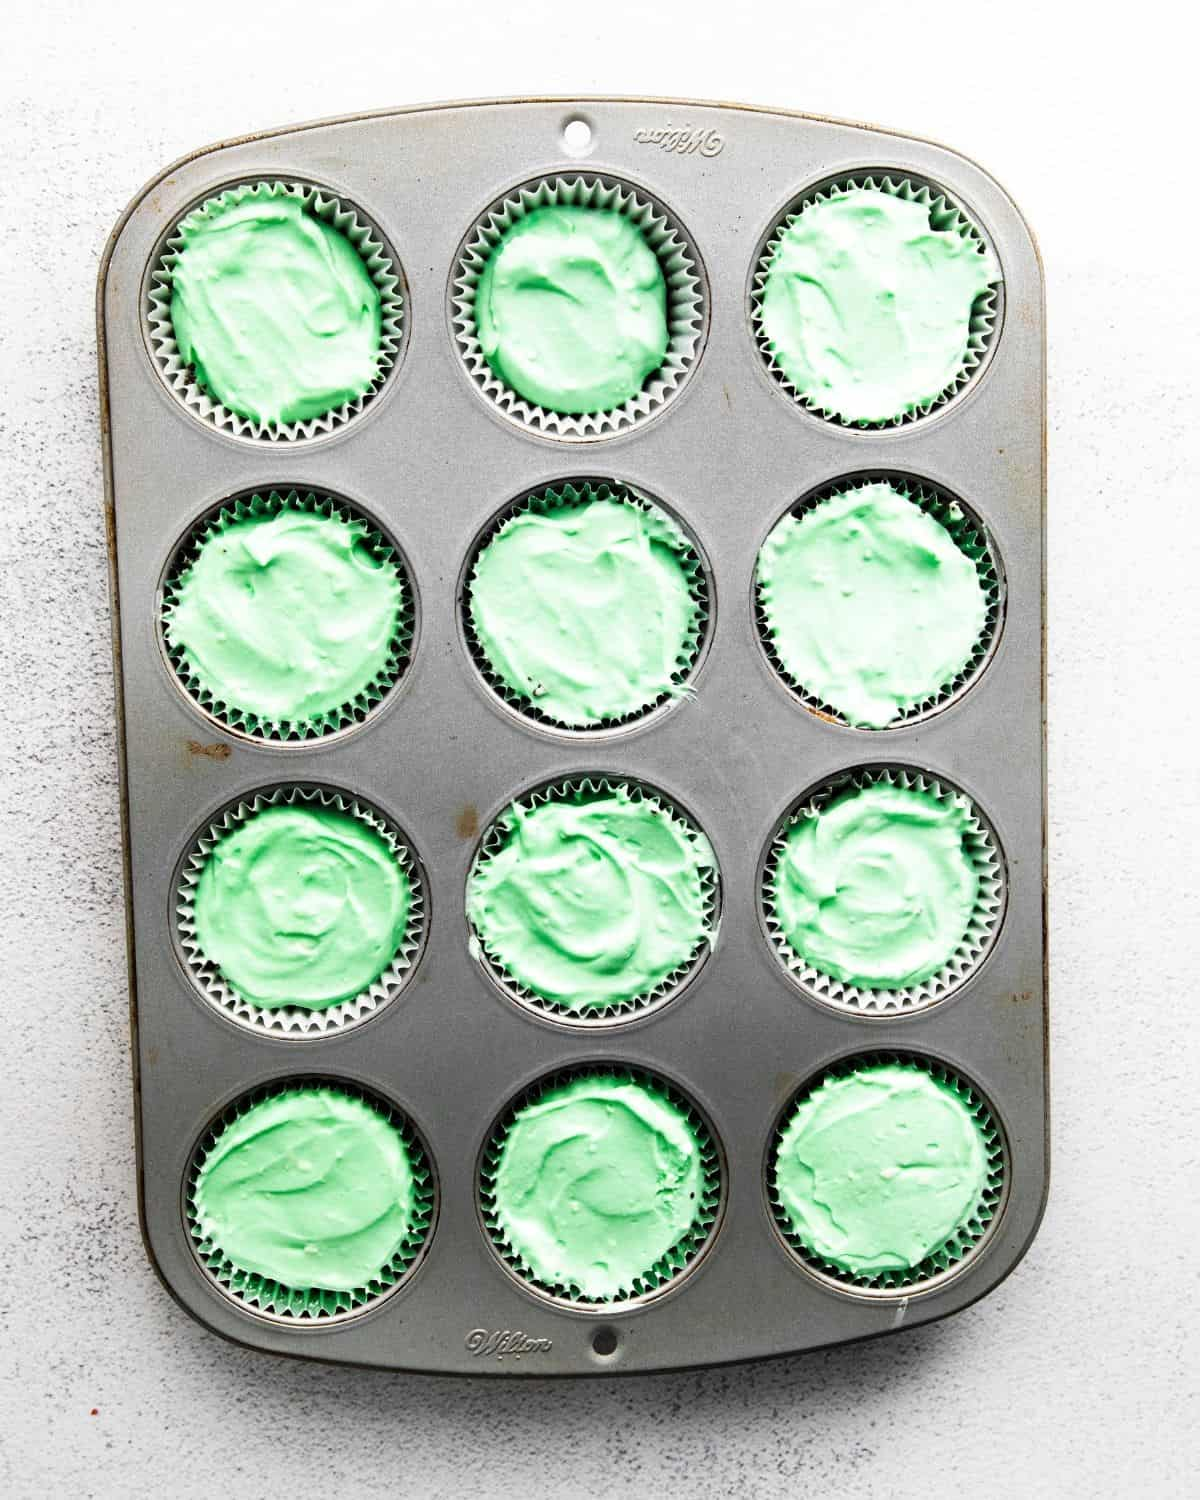 A 12 count muffin tin with green cream cheese in each tmold.